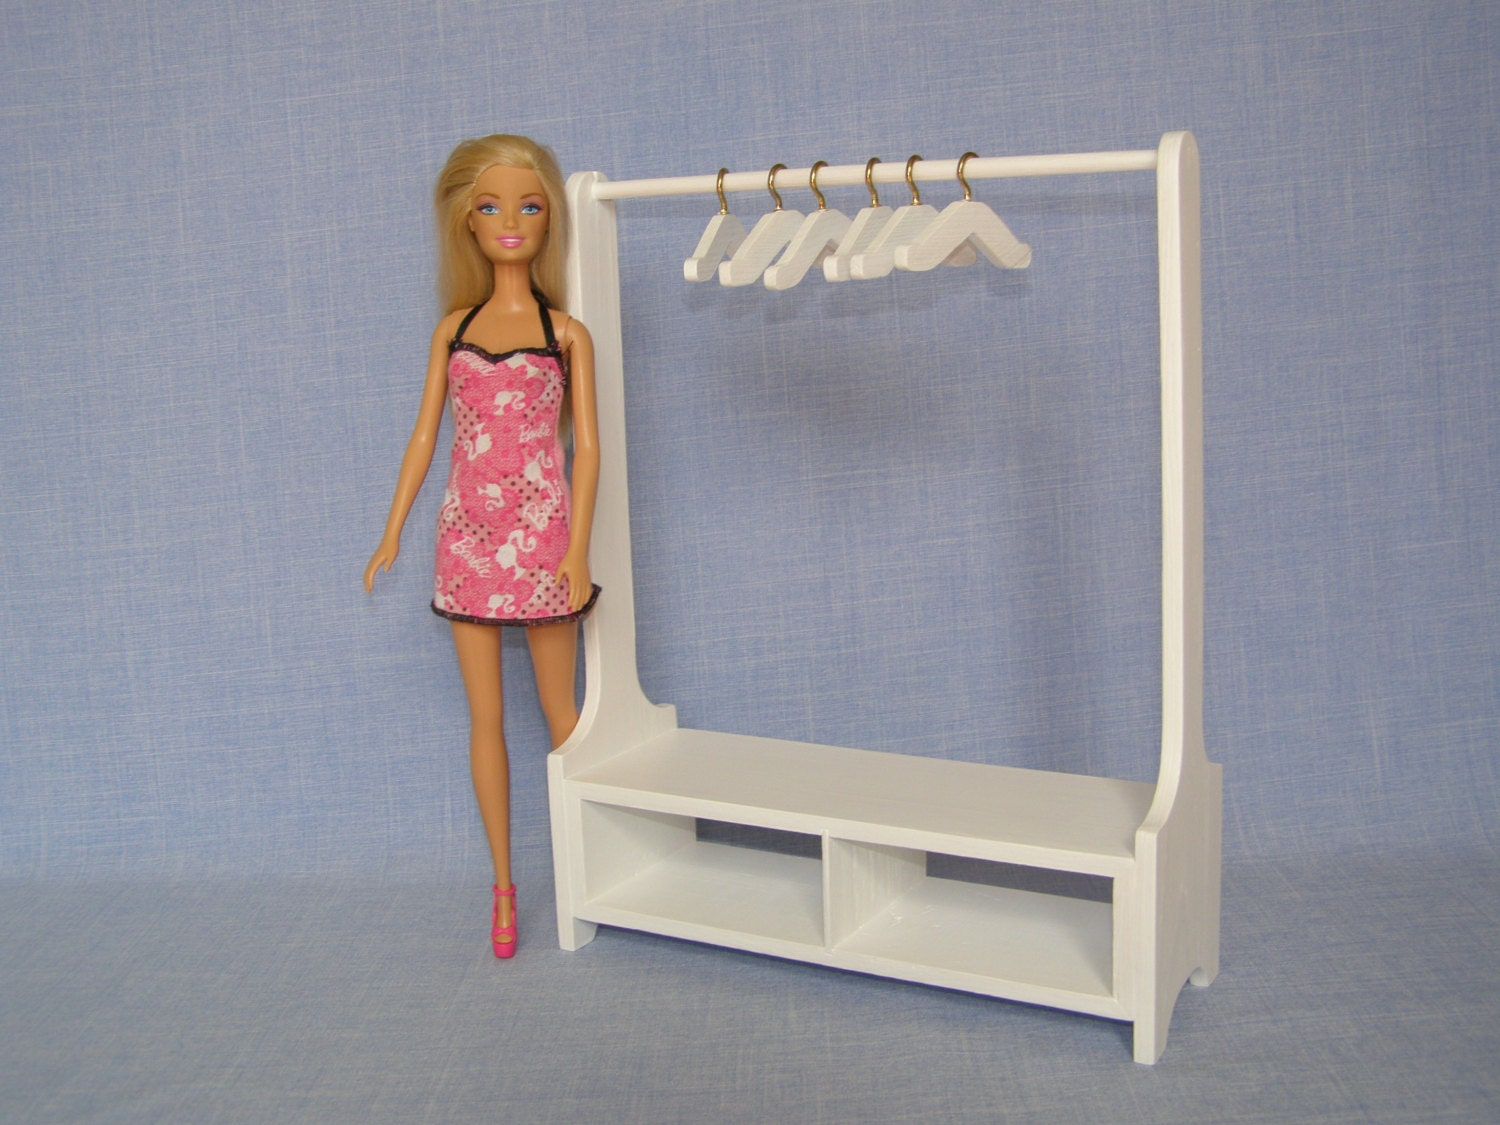 1 6 scale Doll Clothes Rack for 12 Inch doll Handmade Wood